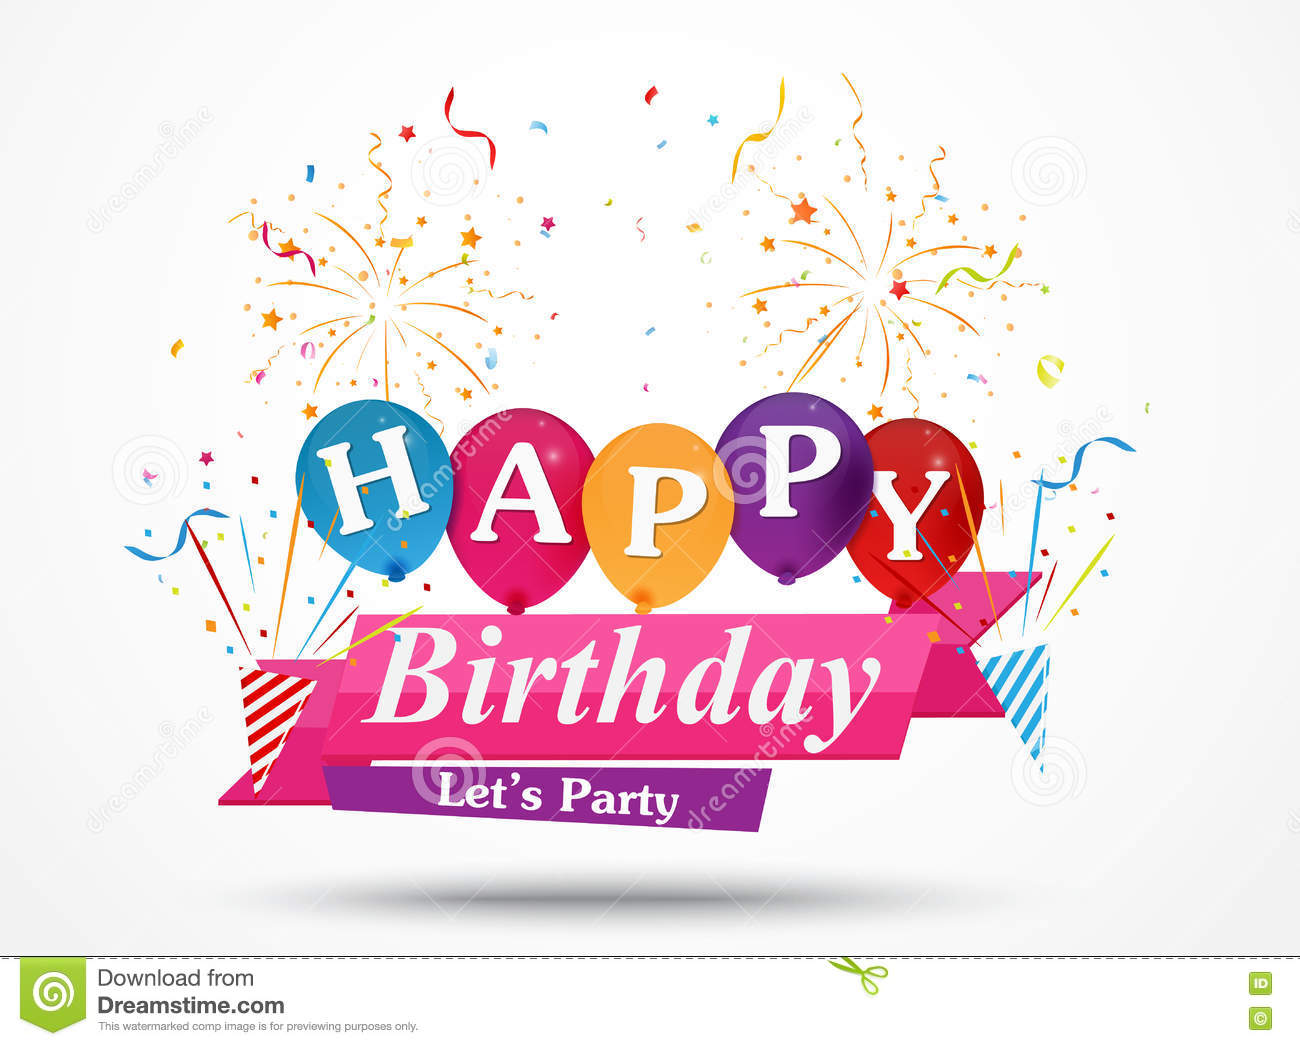 Happy birthday greeting card design stock vector illustration of happy birthday greeting card design m4hsunfo